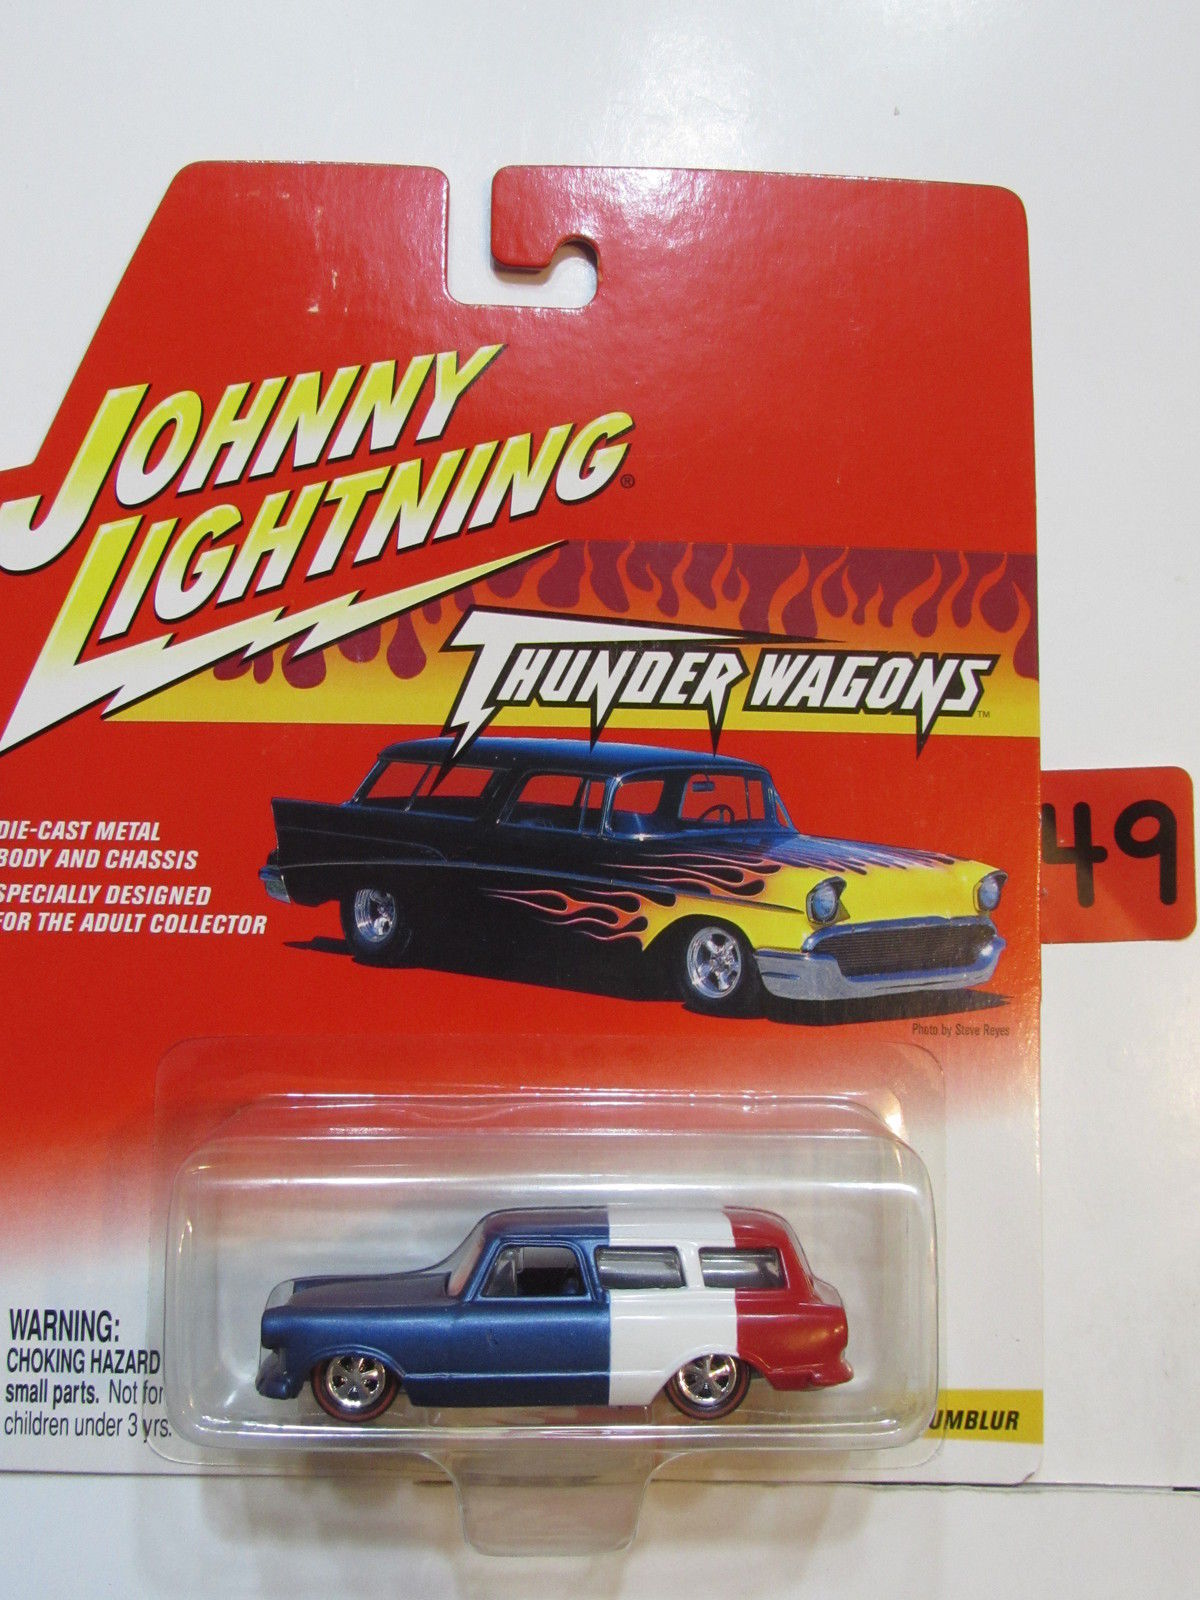 JOHNNY LIGHTNING THUNDER WAGONS - 1950'S CUSTOM RUMBLUR